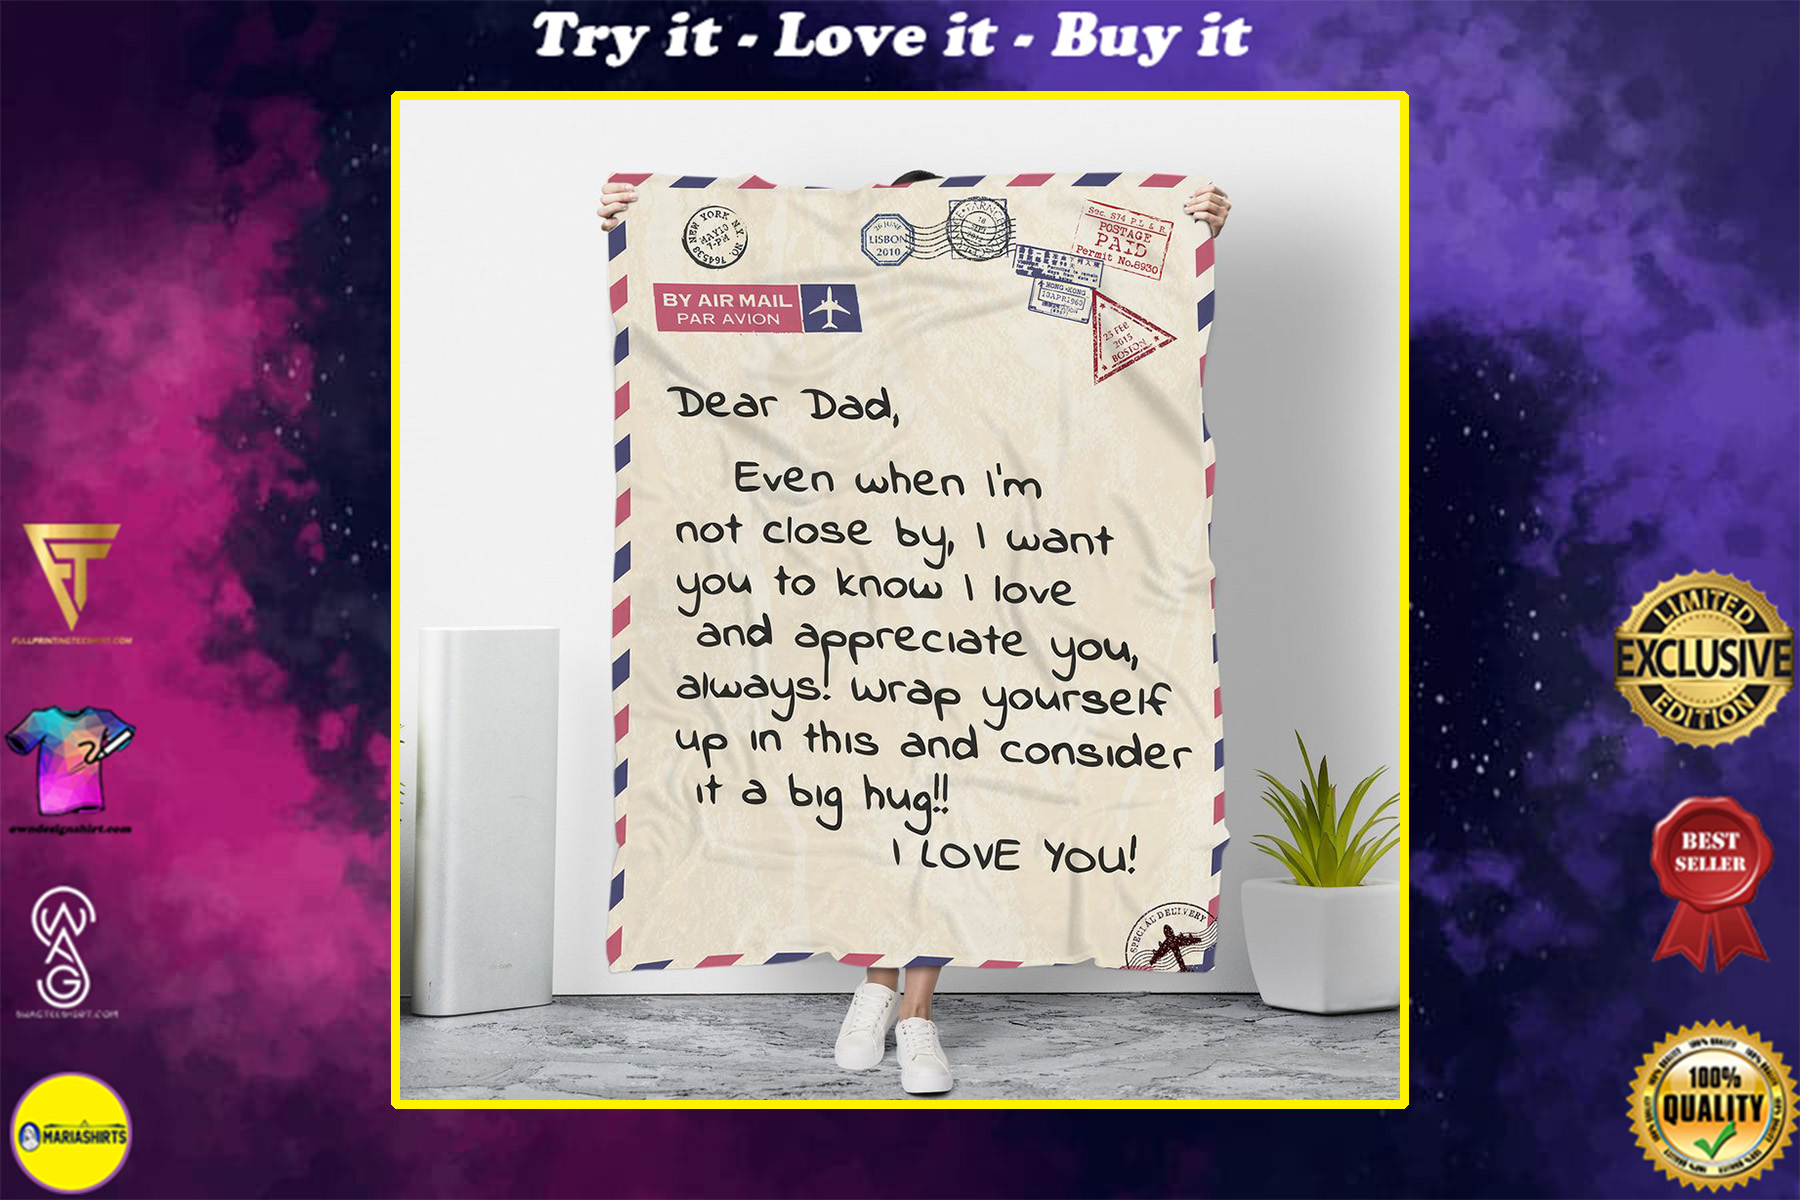 by air mail dear dad wrap yourself up with this i love you blanket